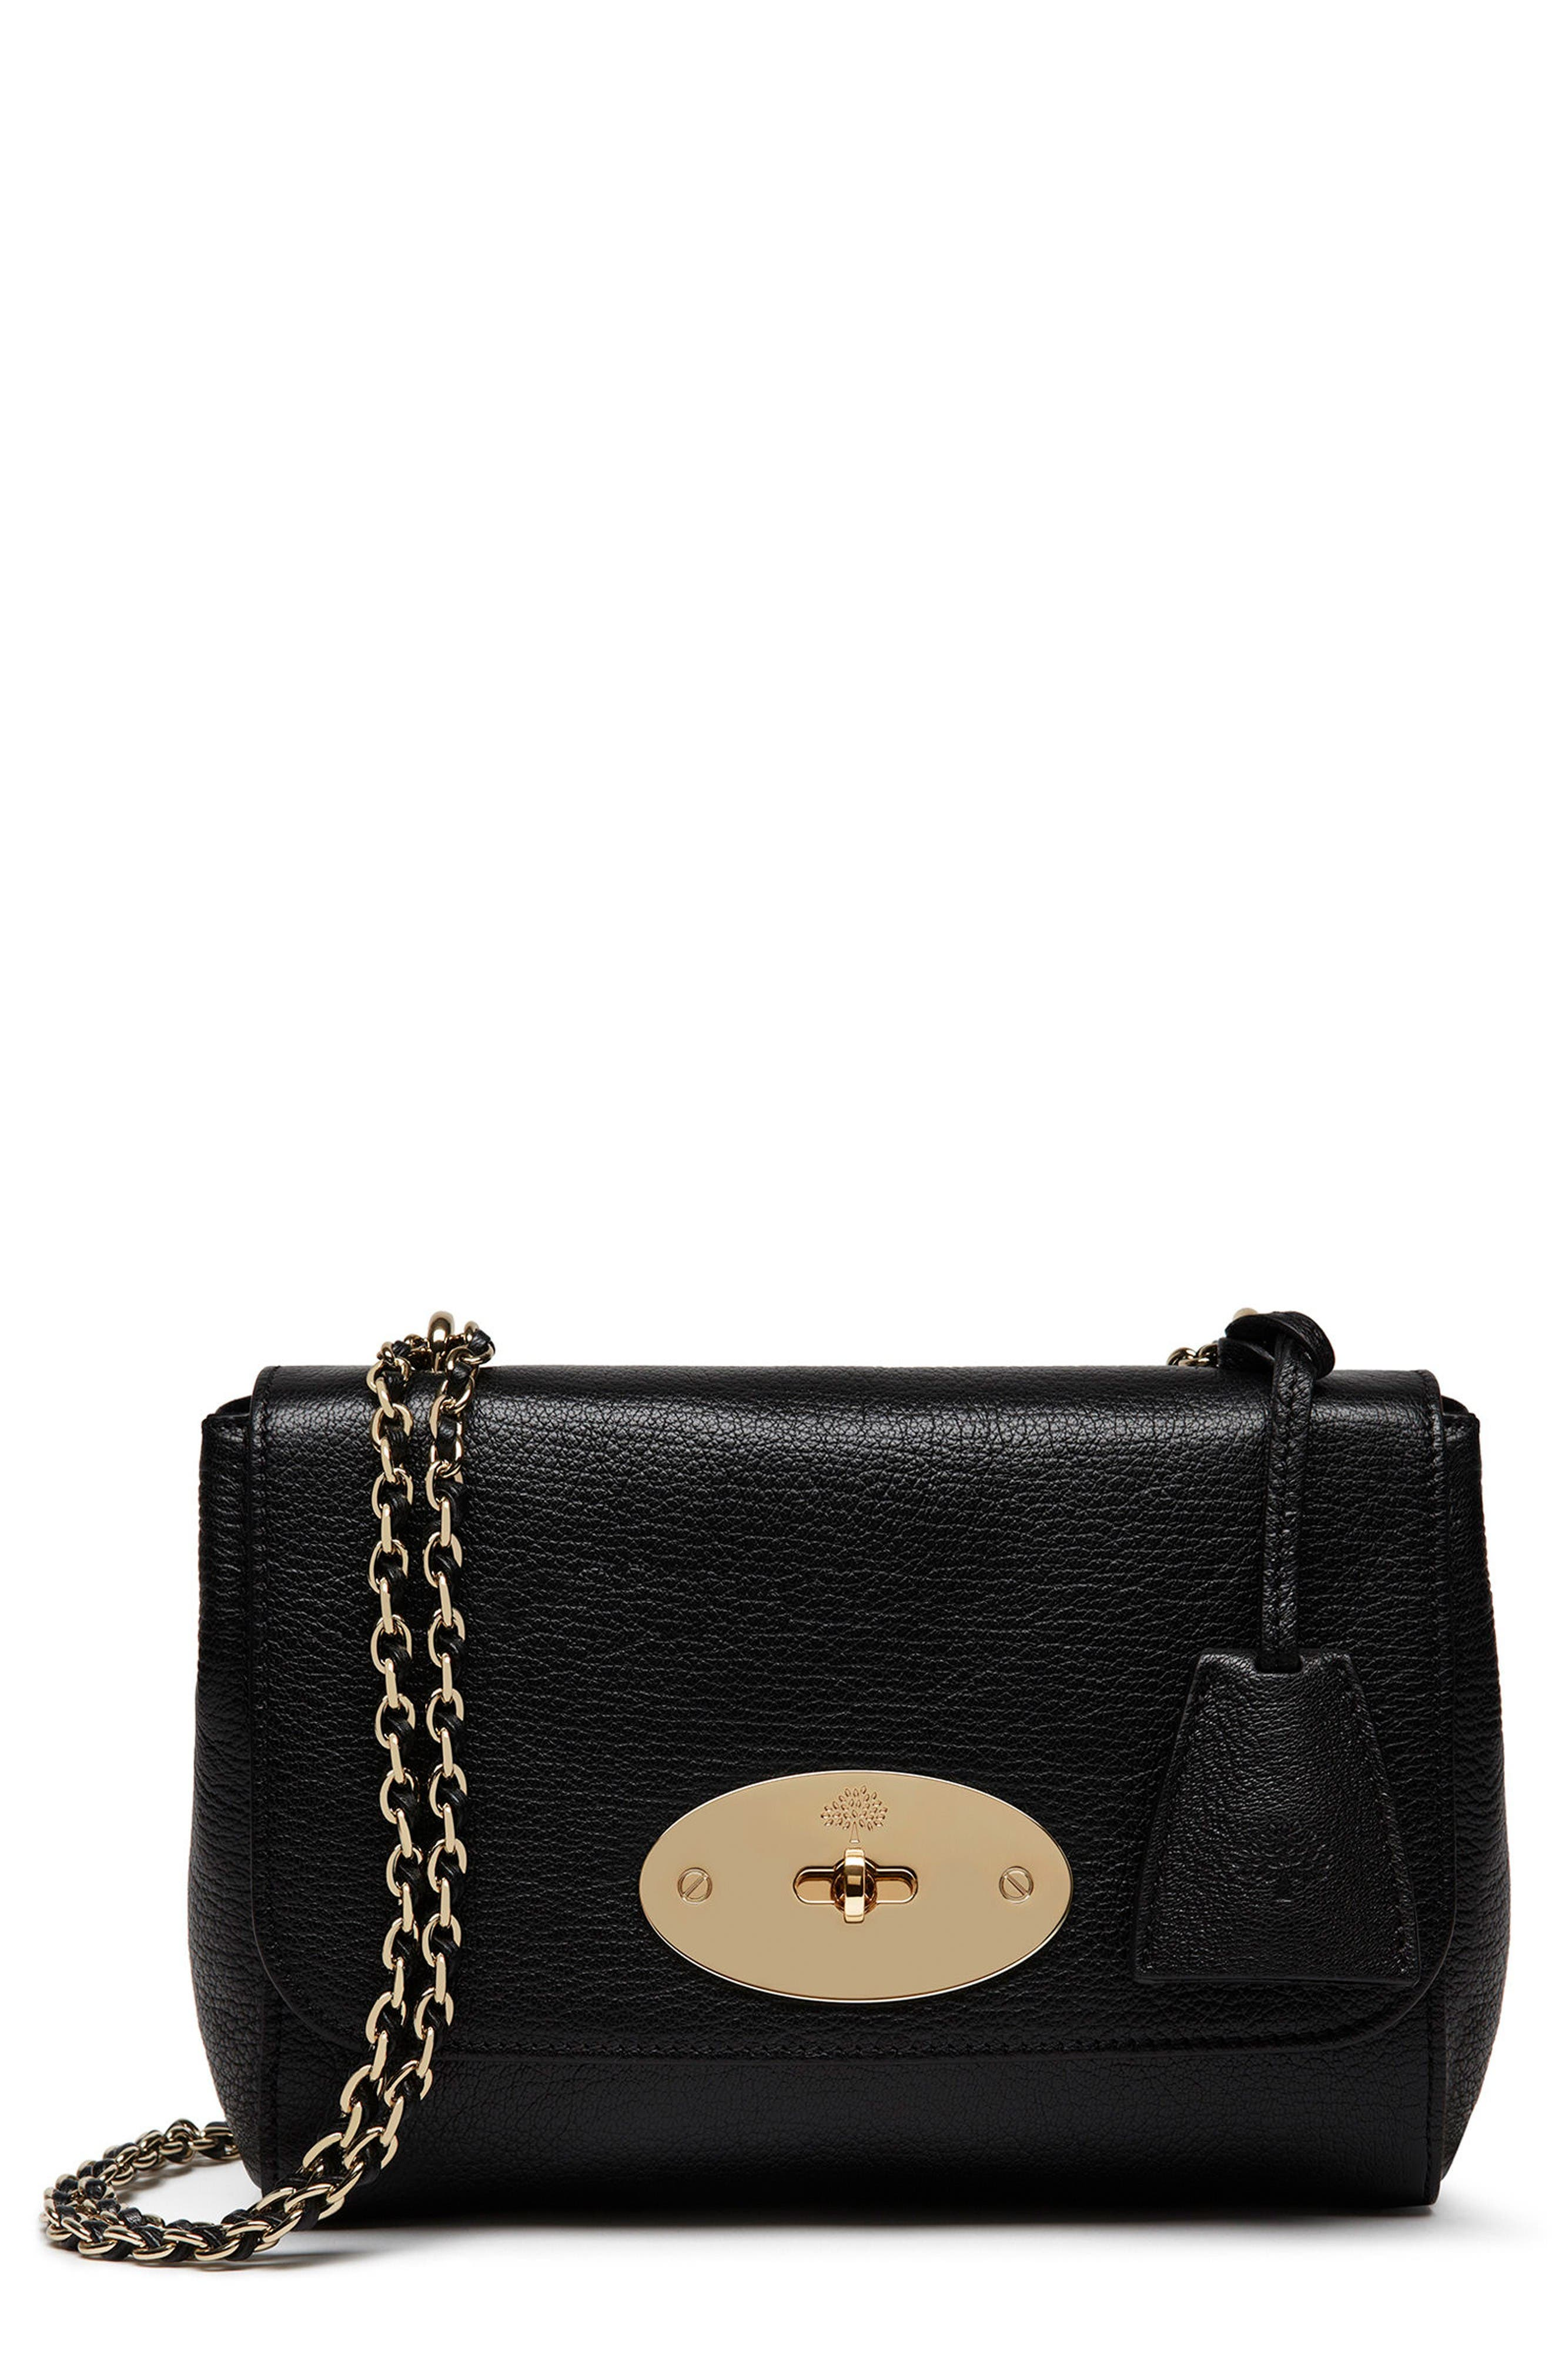 Alternate Image 1 Selected - Mulberry Lily Glossy Leather Crossbody Clutch